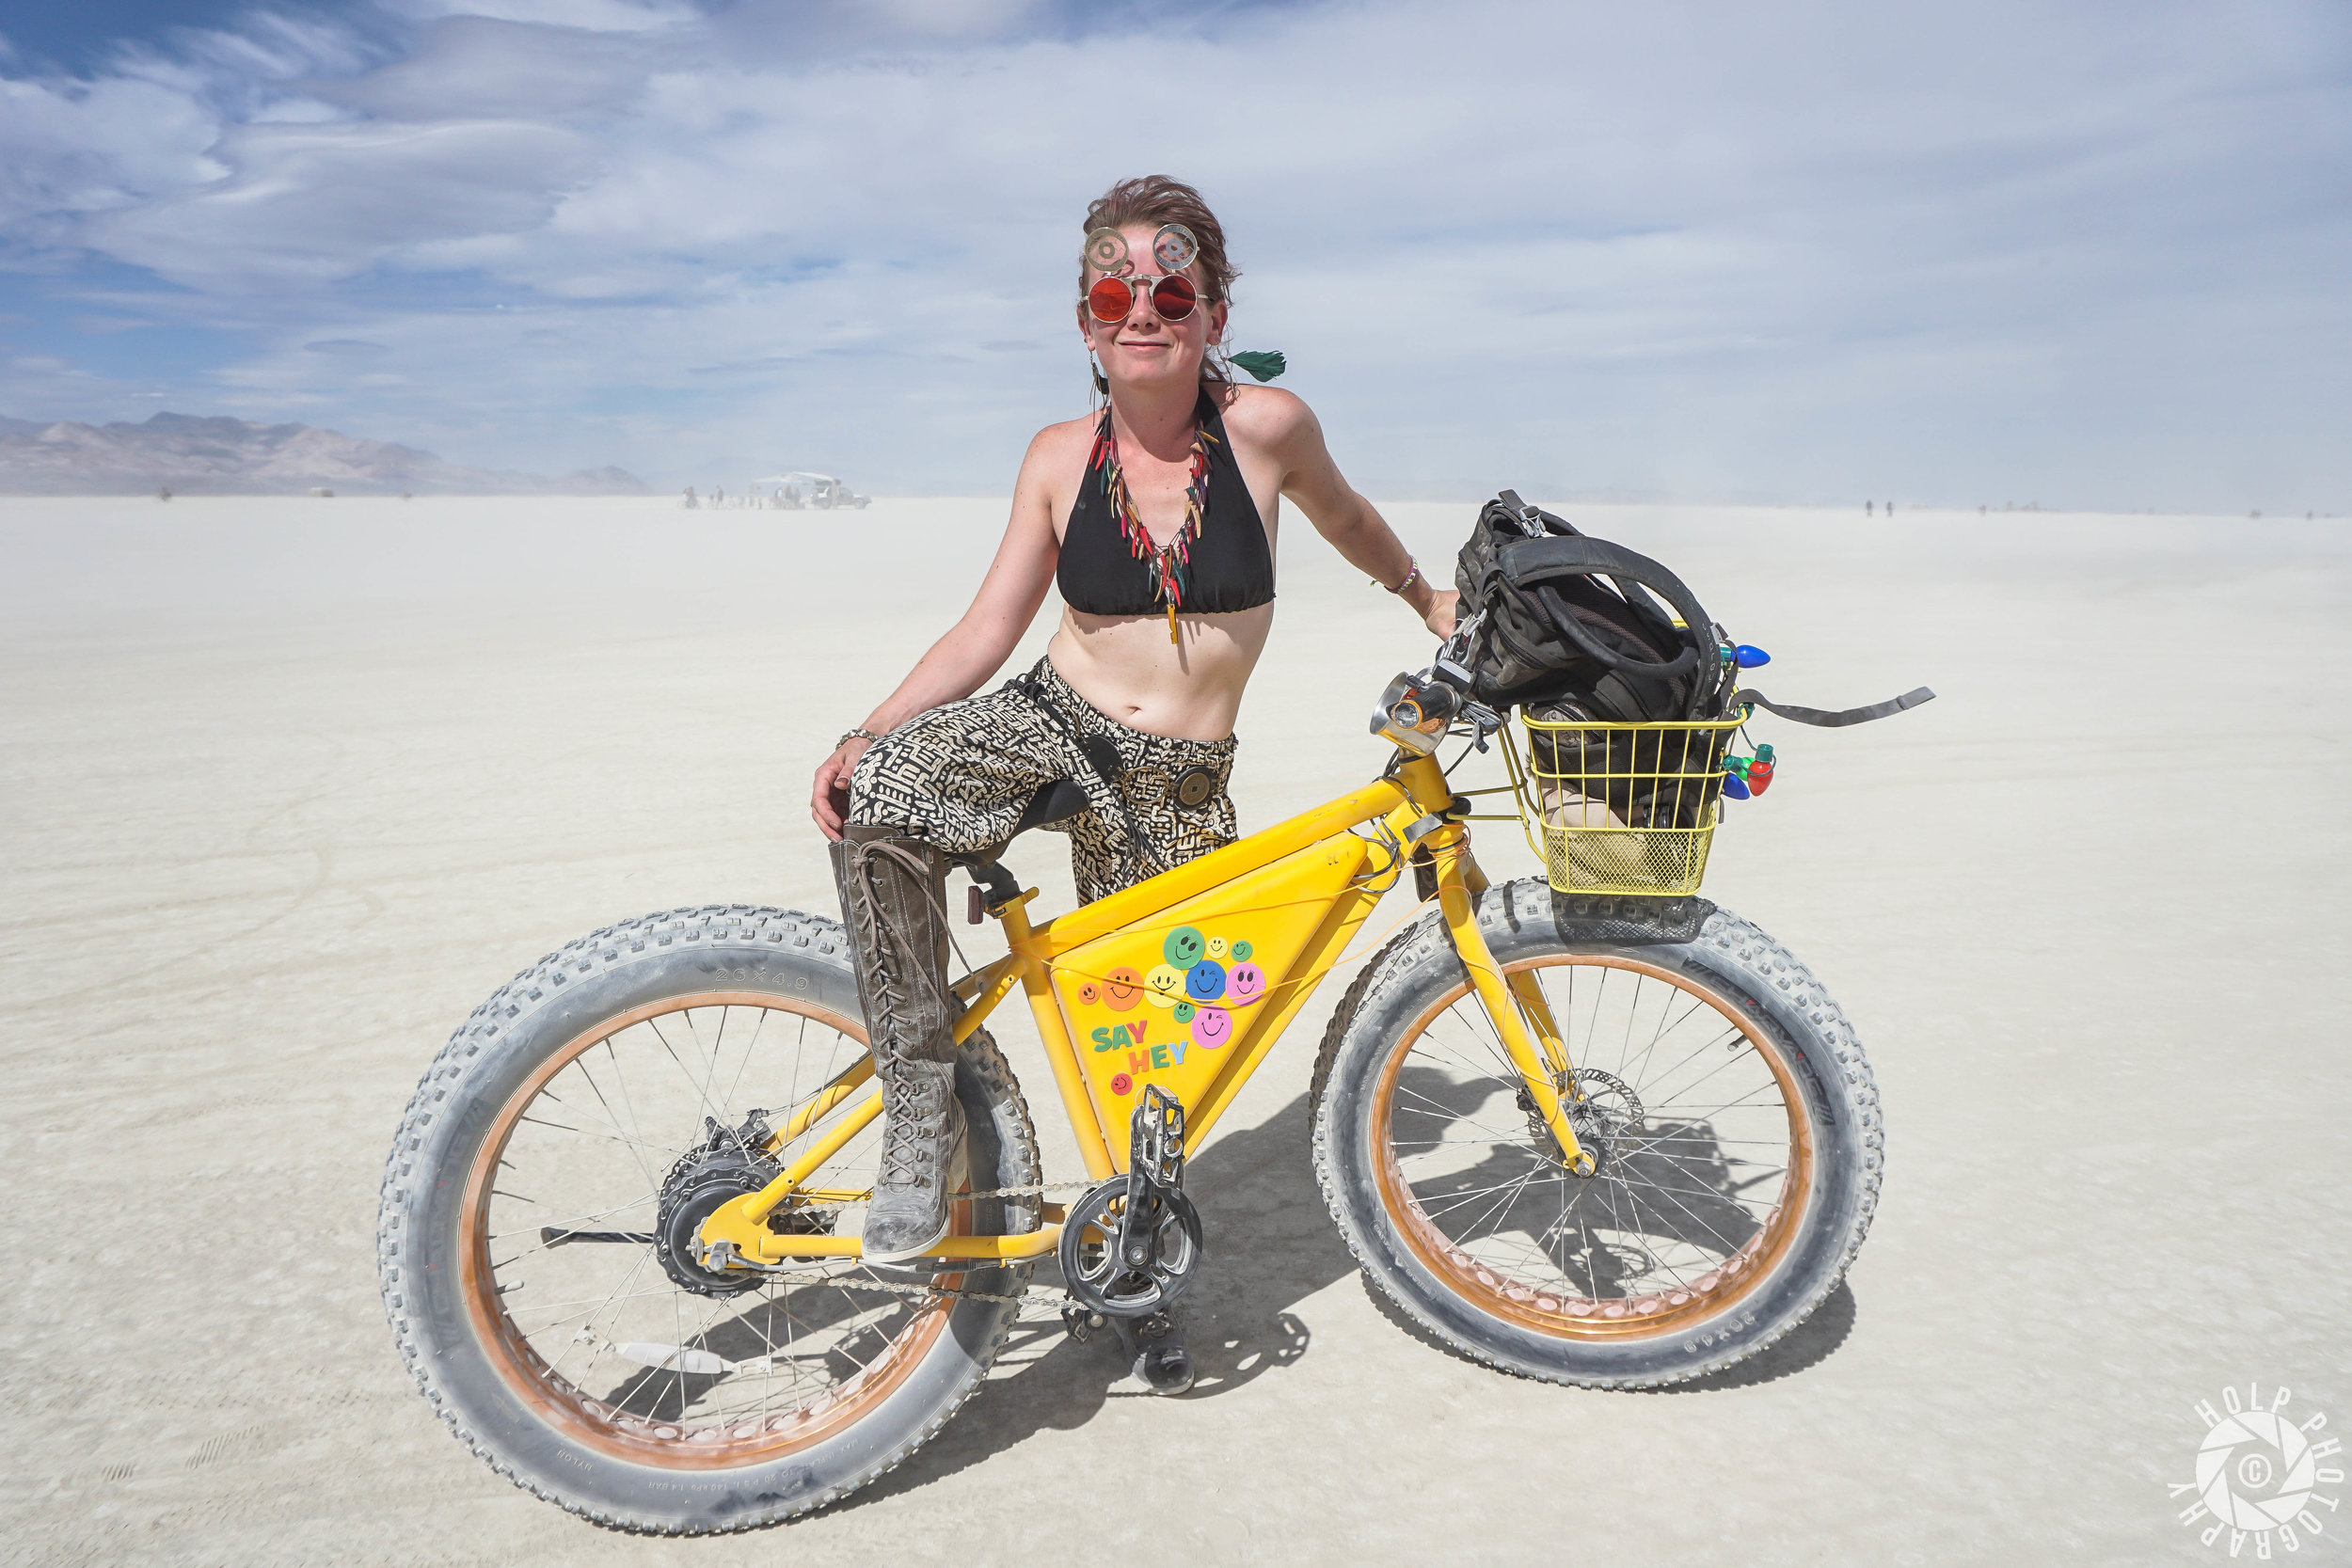 This girl is posing in front of her electric-motor bike on the playa.